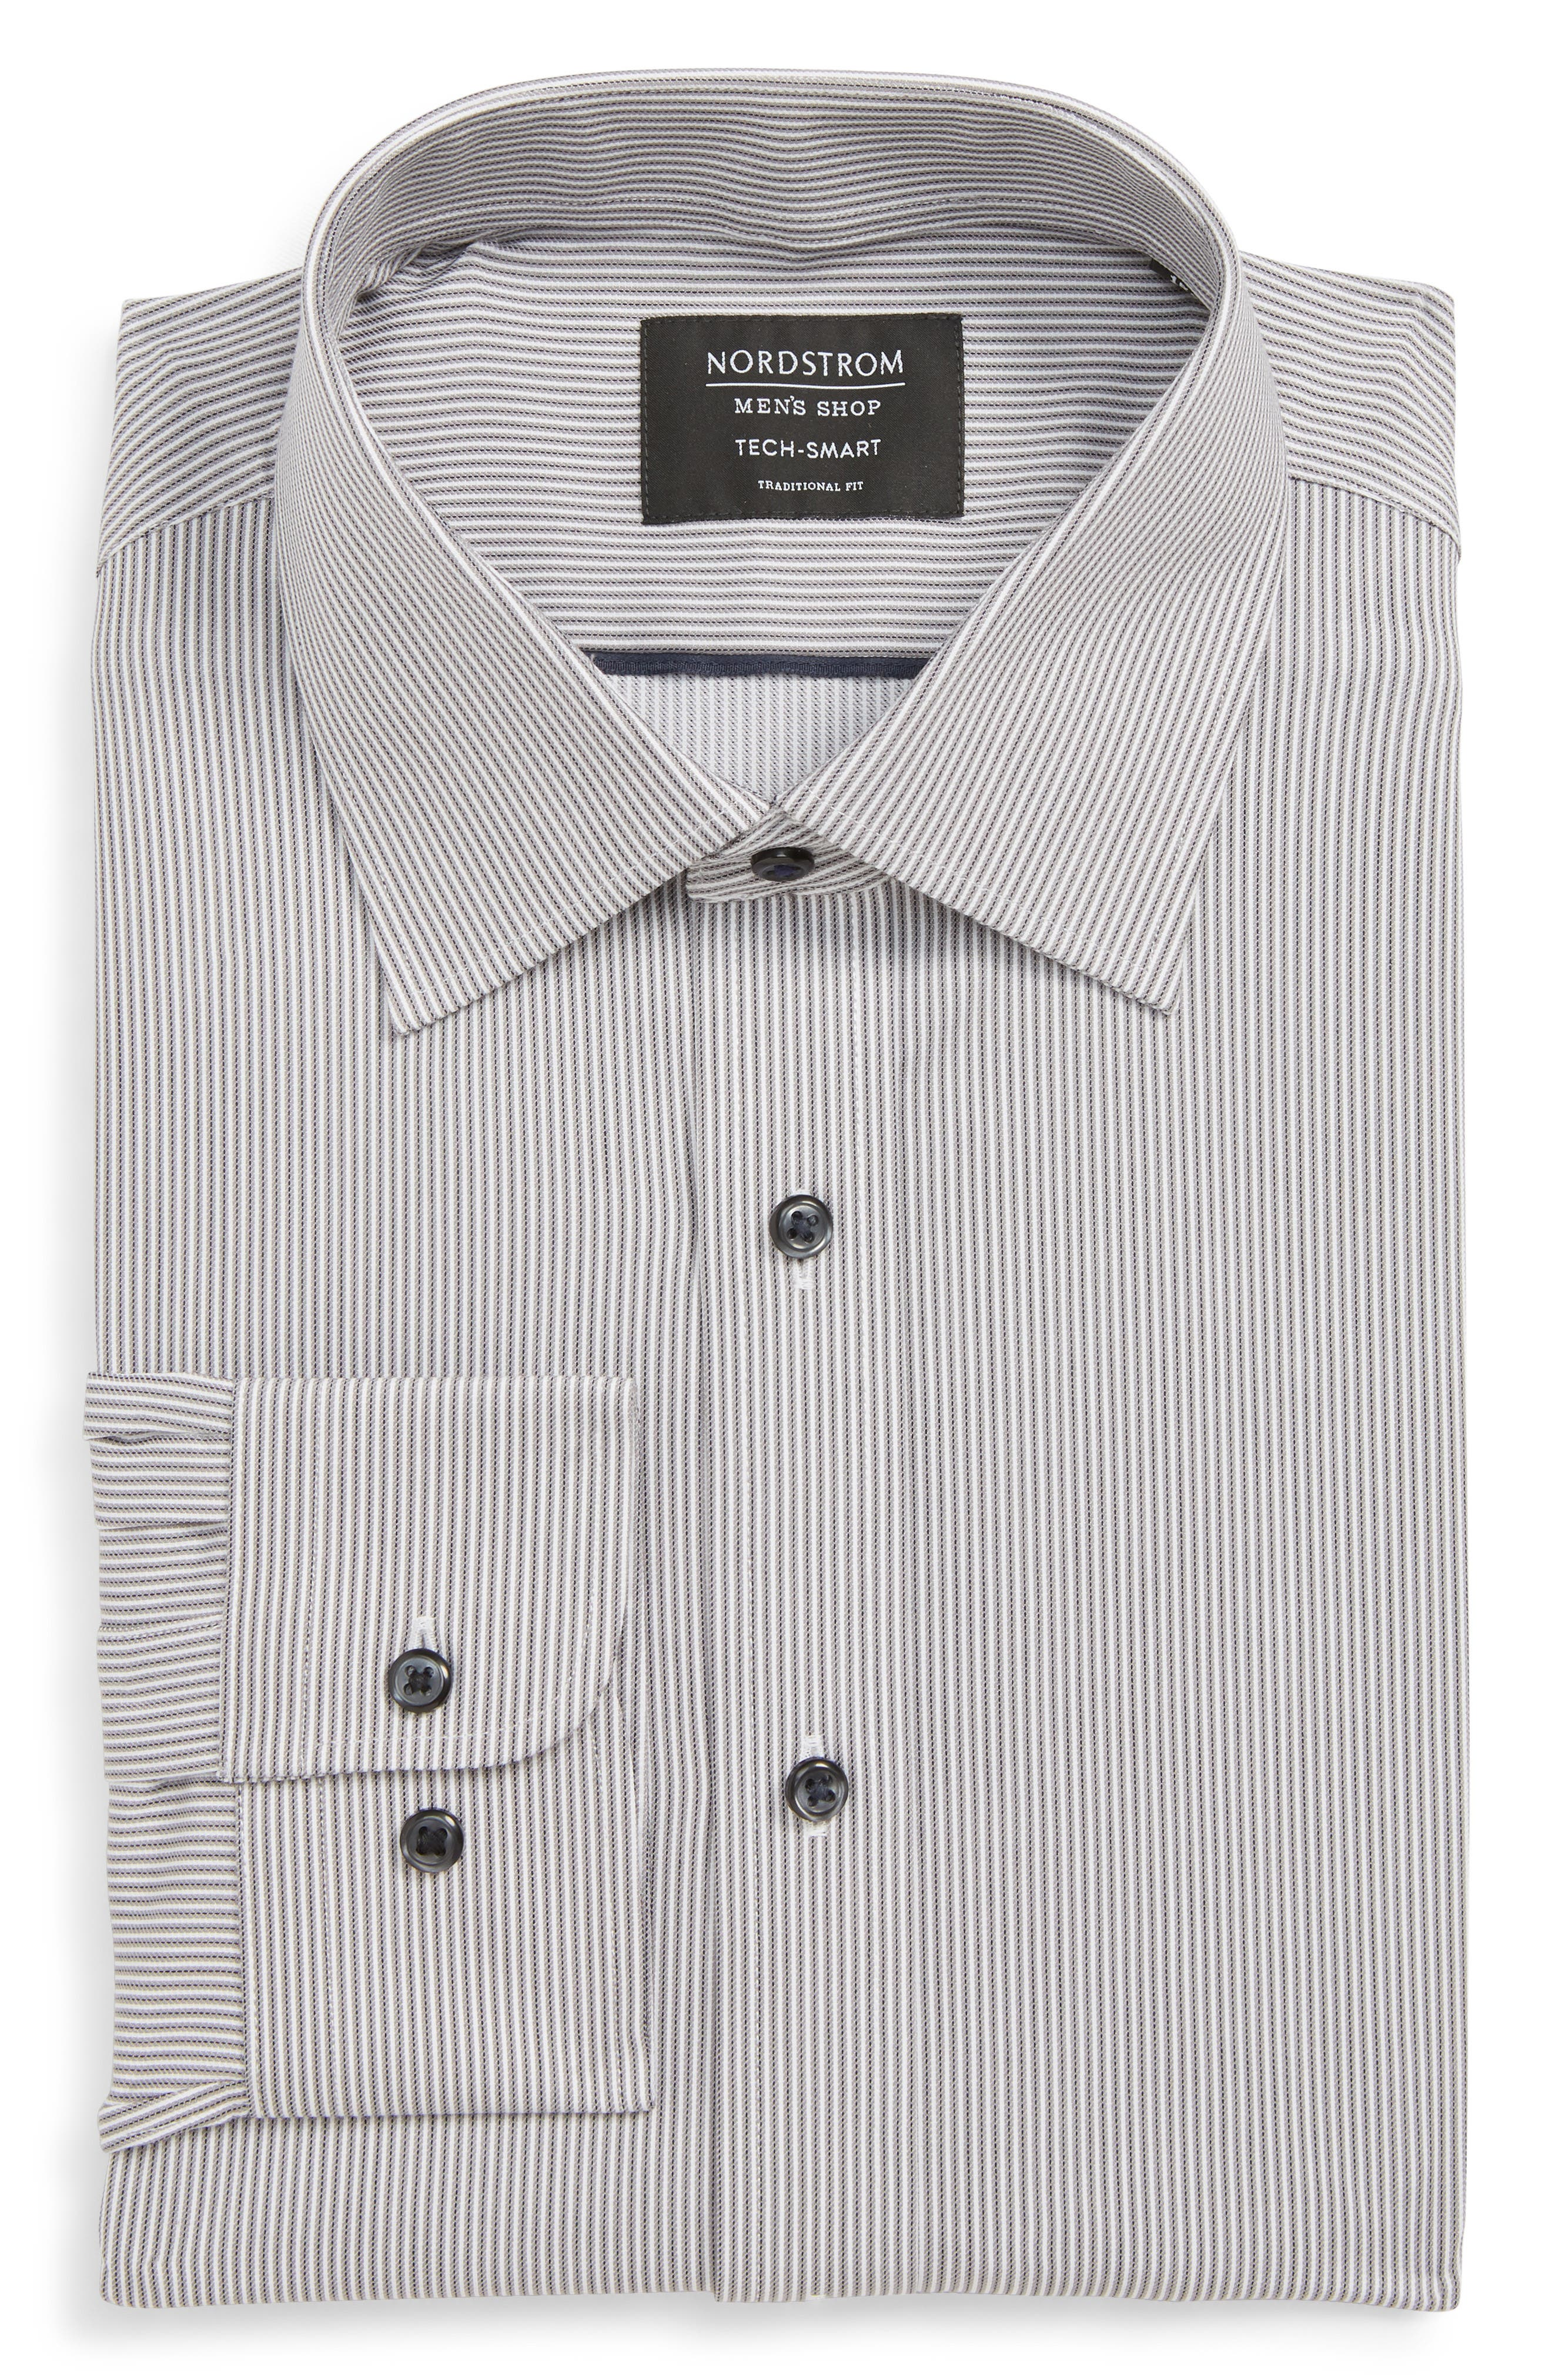 Tech-Smart Traditional Fit Stripe Stretch Dress Shirt,                             Main thumbnail 1, color,                             GREY ONYX